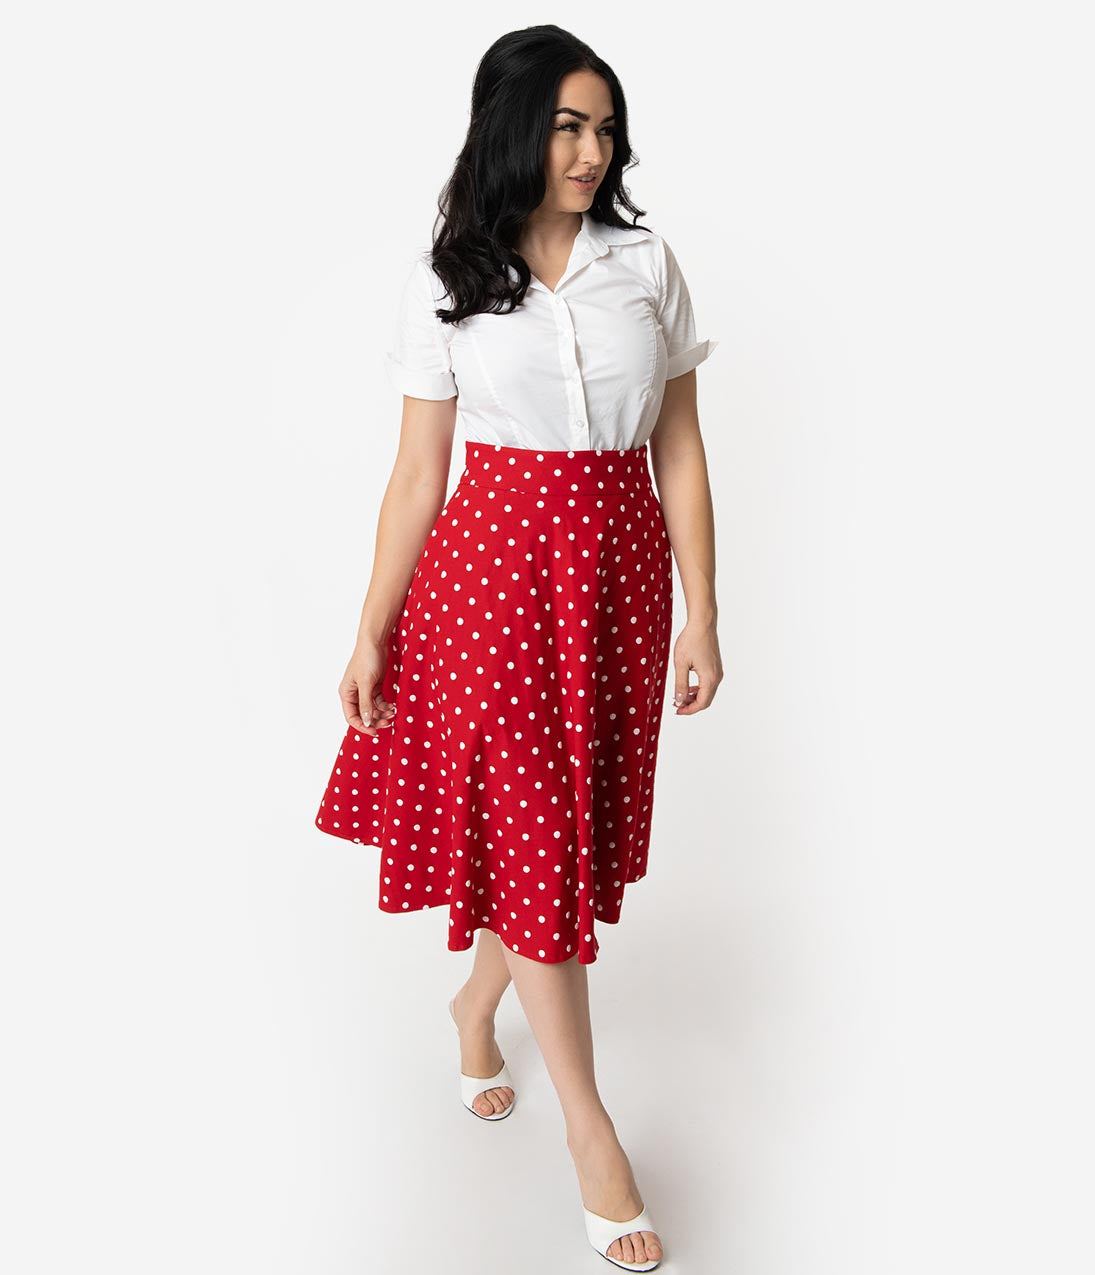 a75359ca8c 1940s Style Skirts- Vintage High Waisted Skirts Unique Vintage Retro Style  Red White Polka Dot